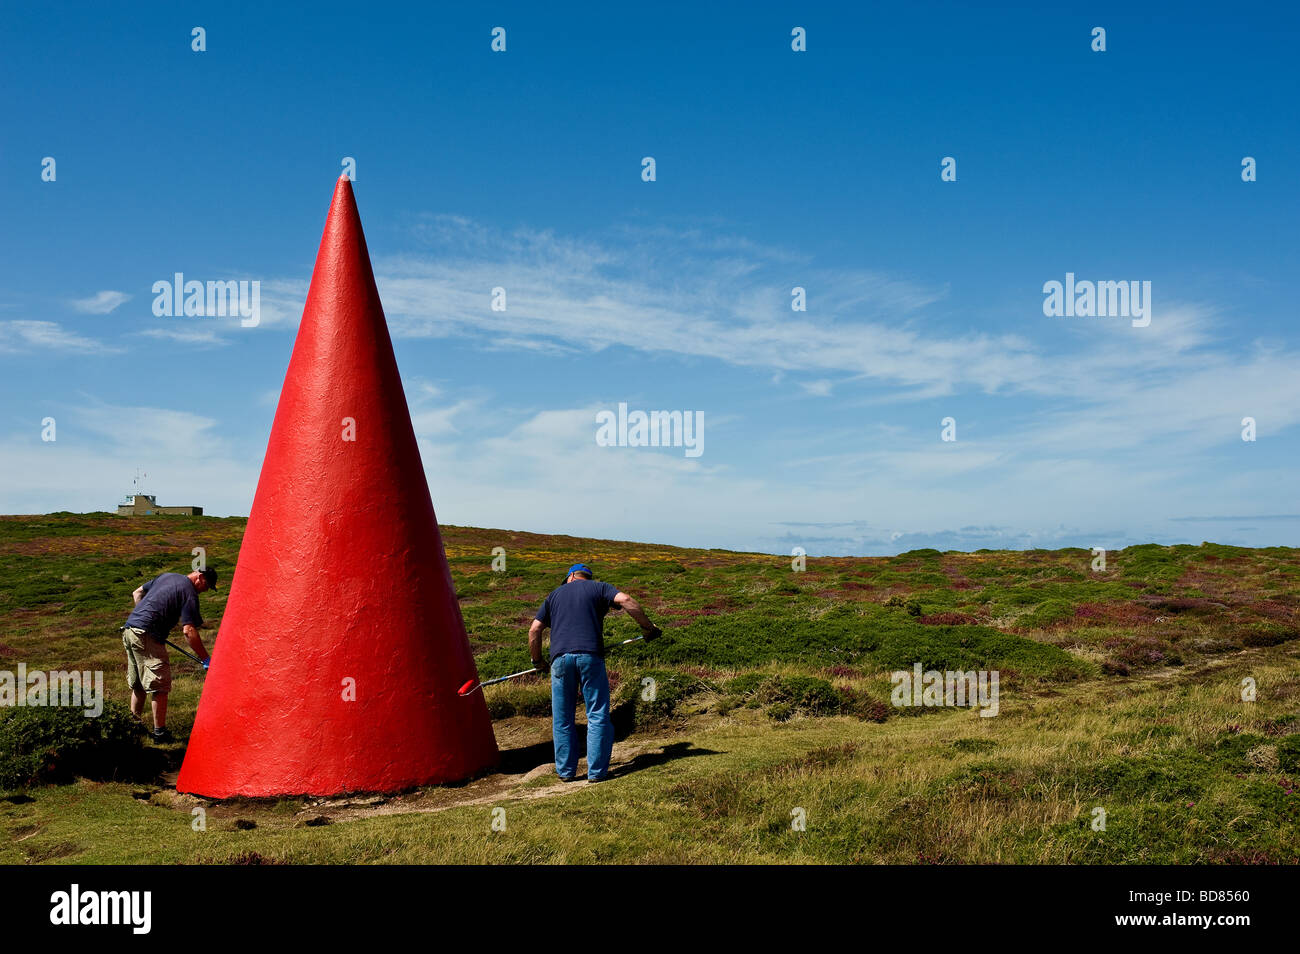 Workmen painting one of the navigation markers near Porthgwarra in Cornwall. - Stock Image